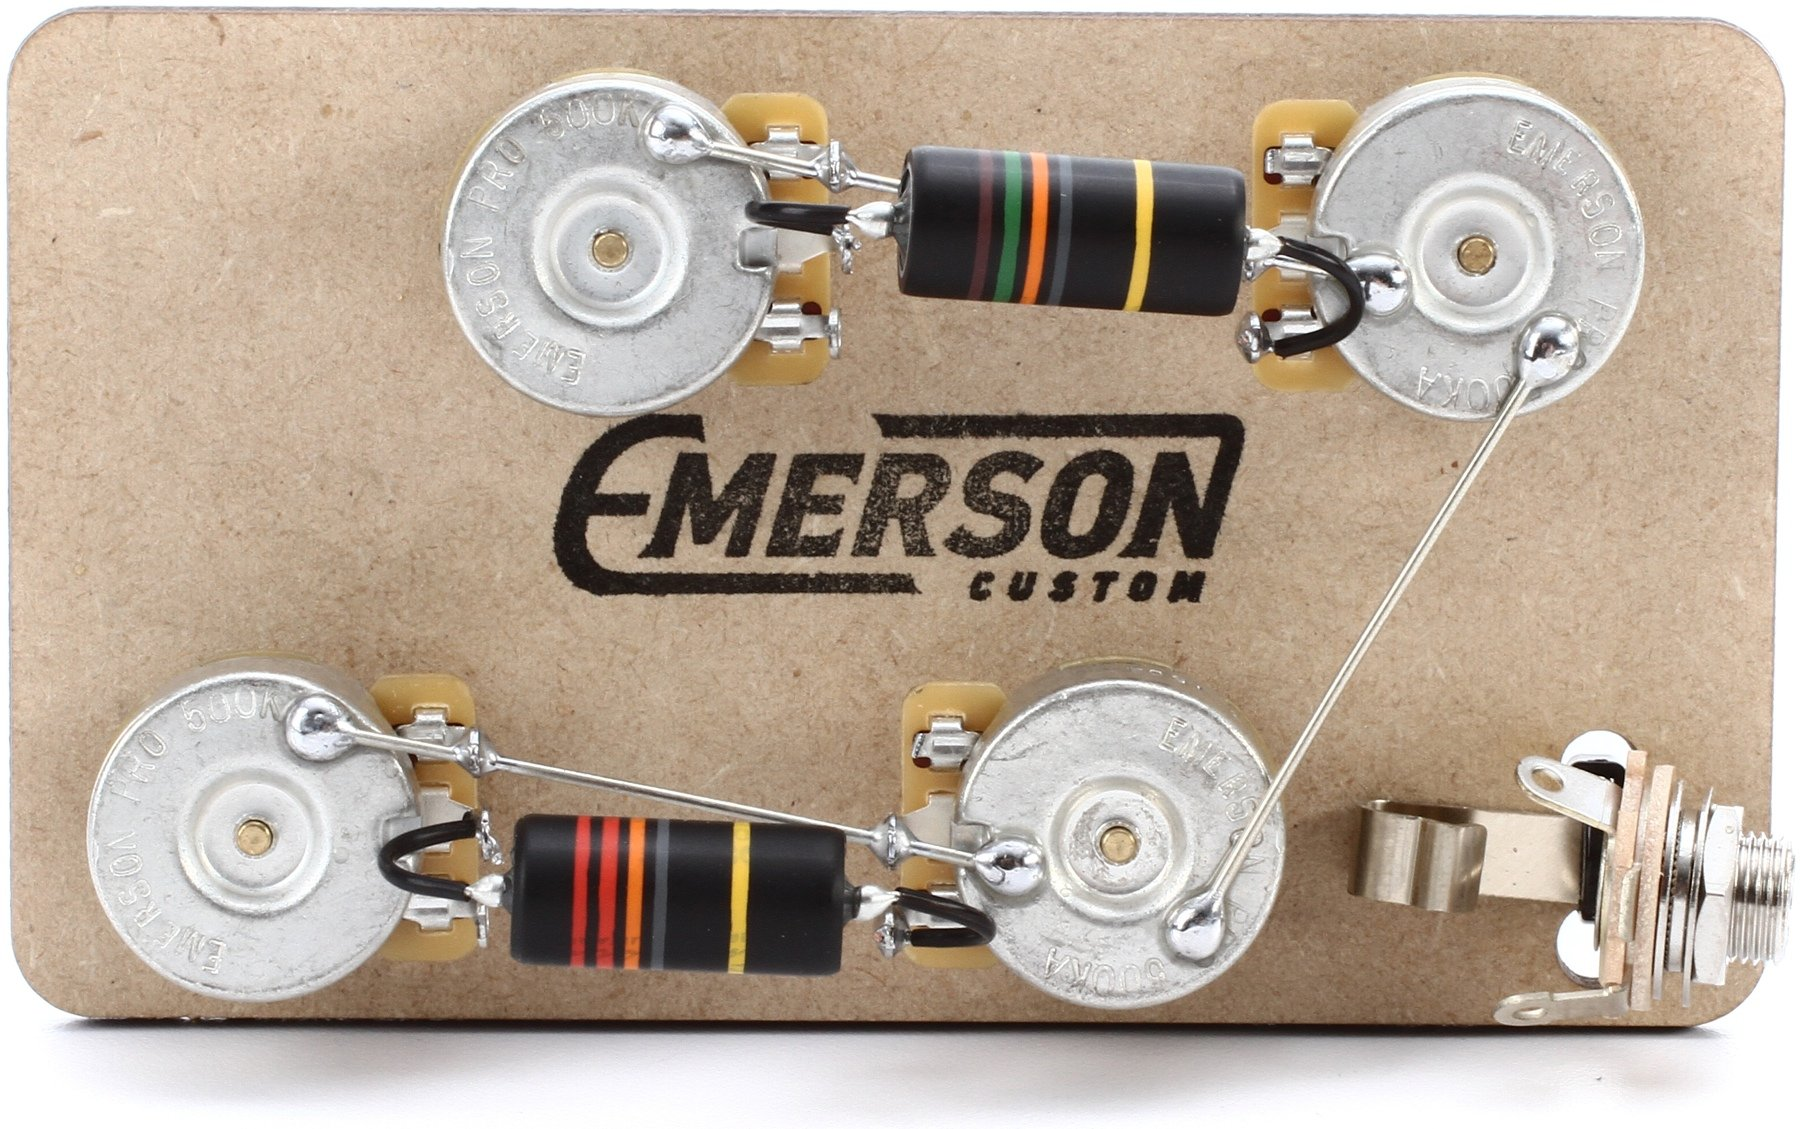 hight resolution of emerson custom prewired kit for gibson les paul guitars long shaft image 1